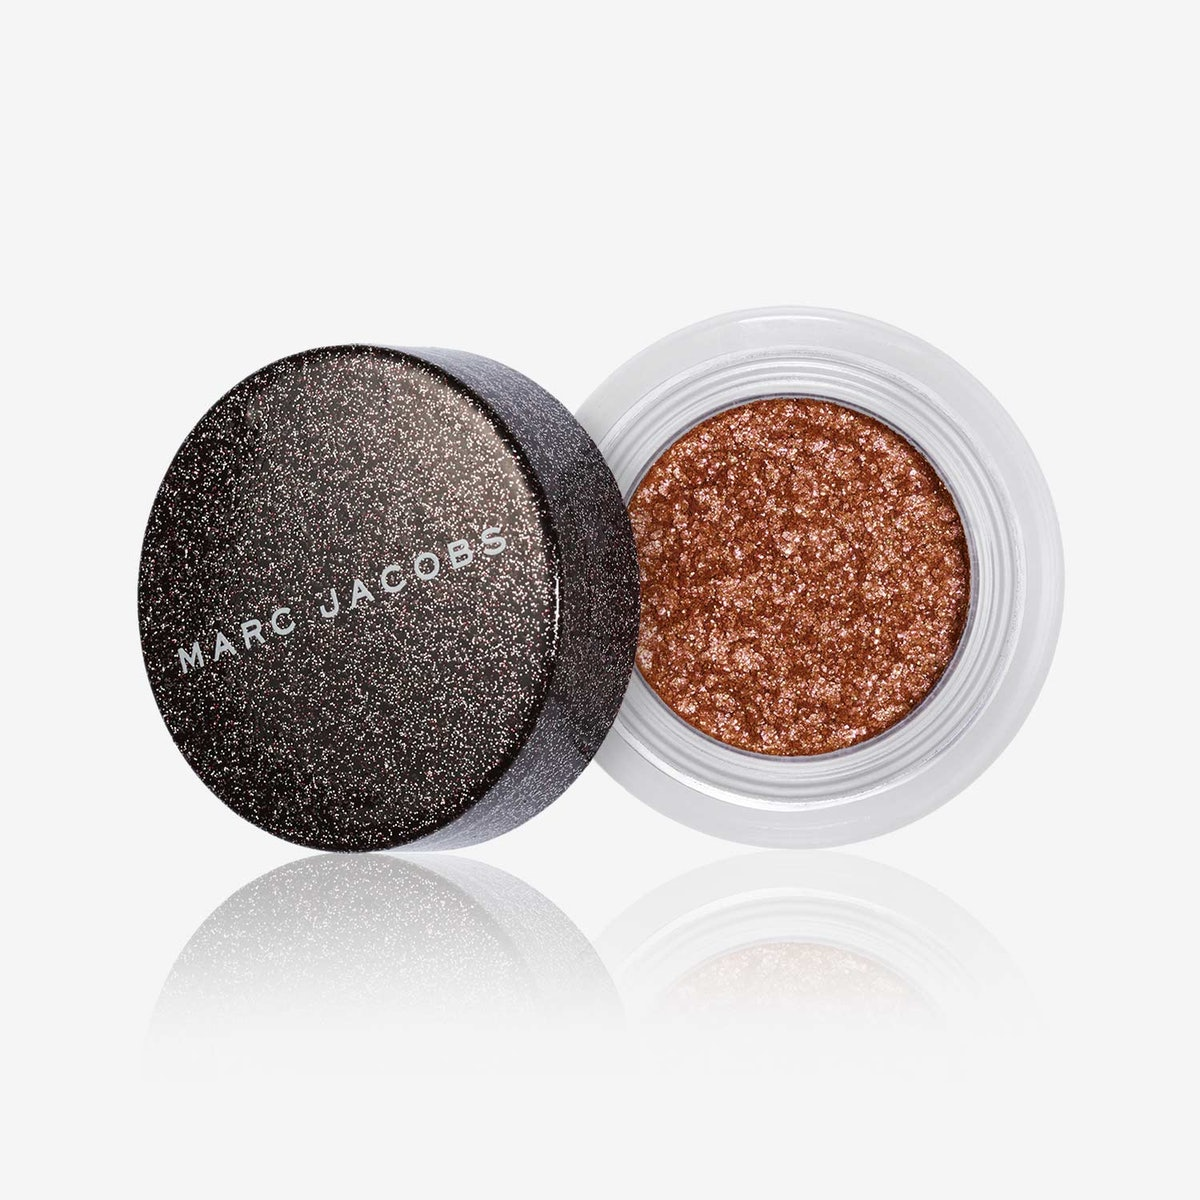 See-Quins Glam Glitter Eyeshadow in Star Dust 100